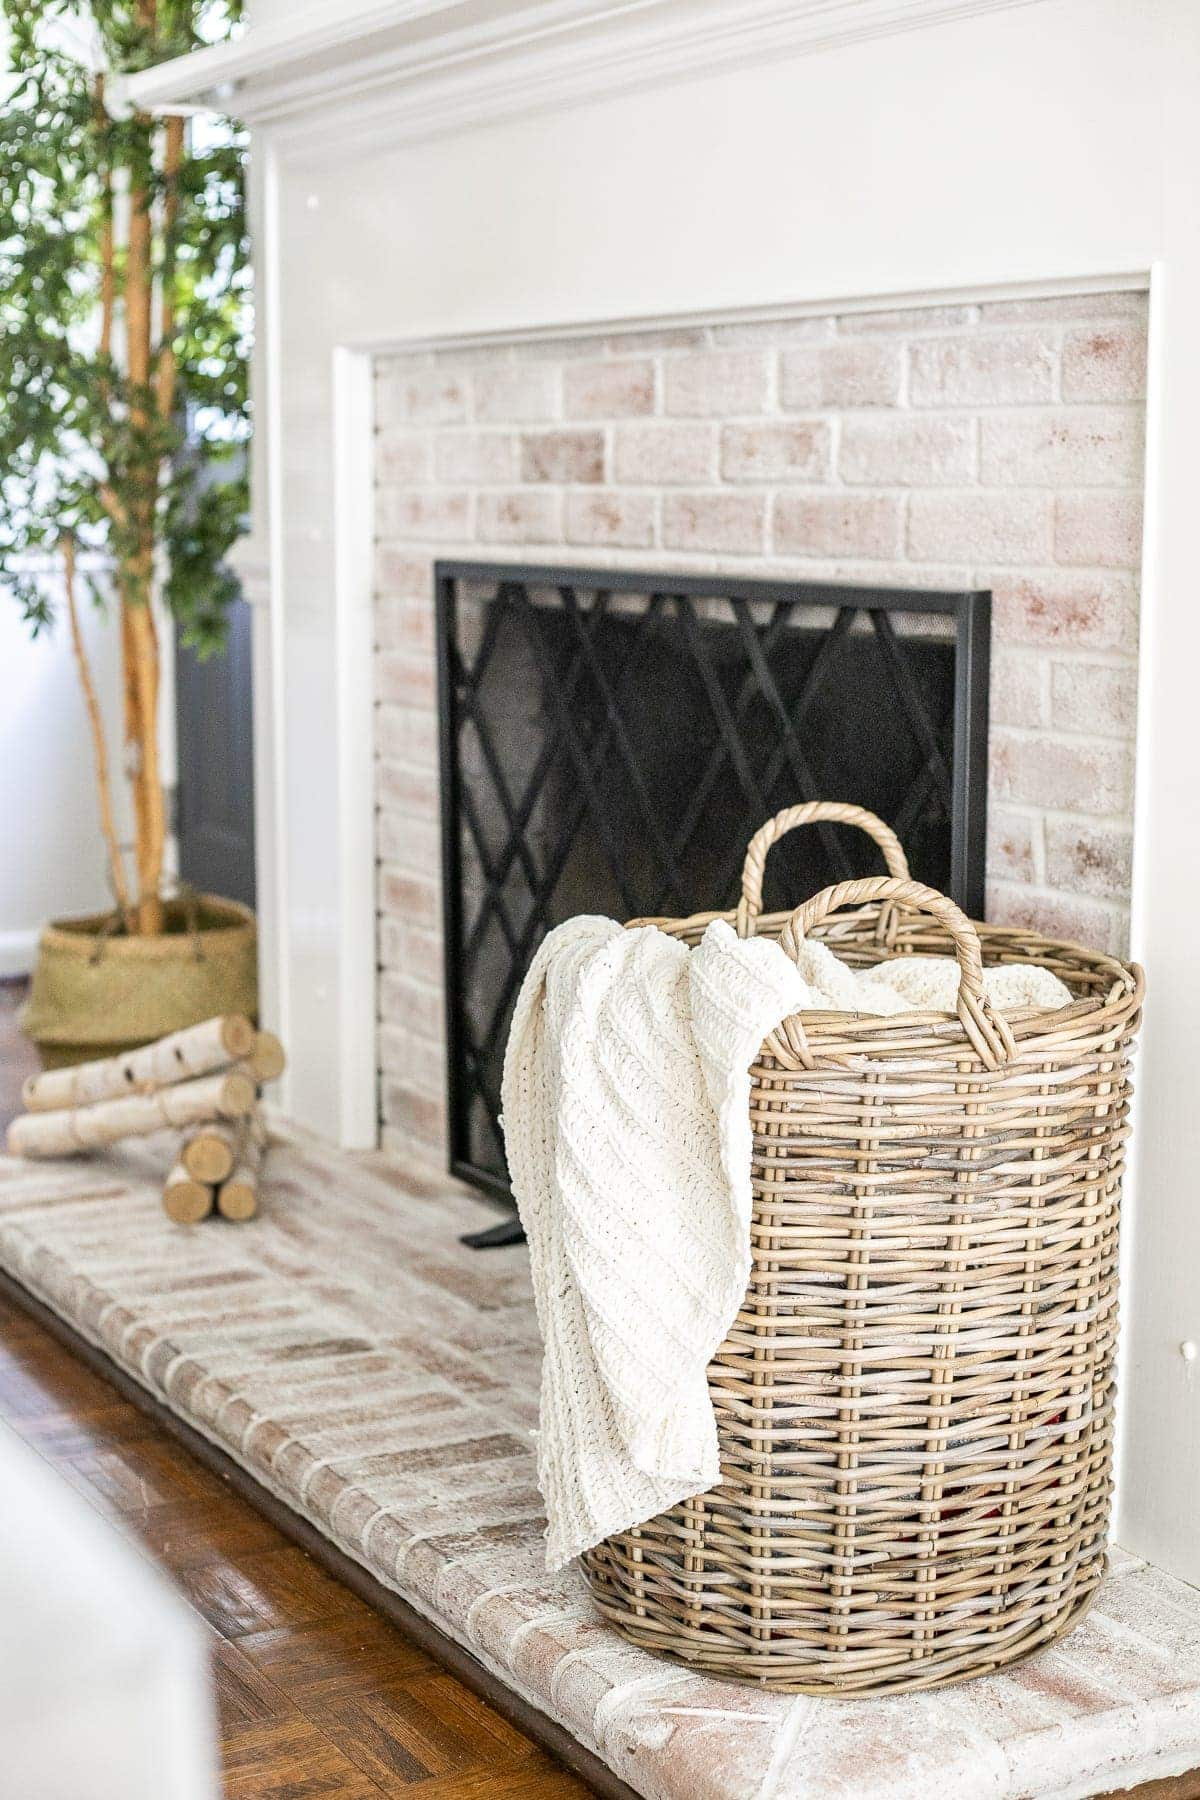 woven basket with cable knit throw blanket on limewashed brick fireplace